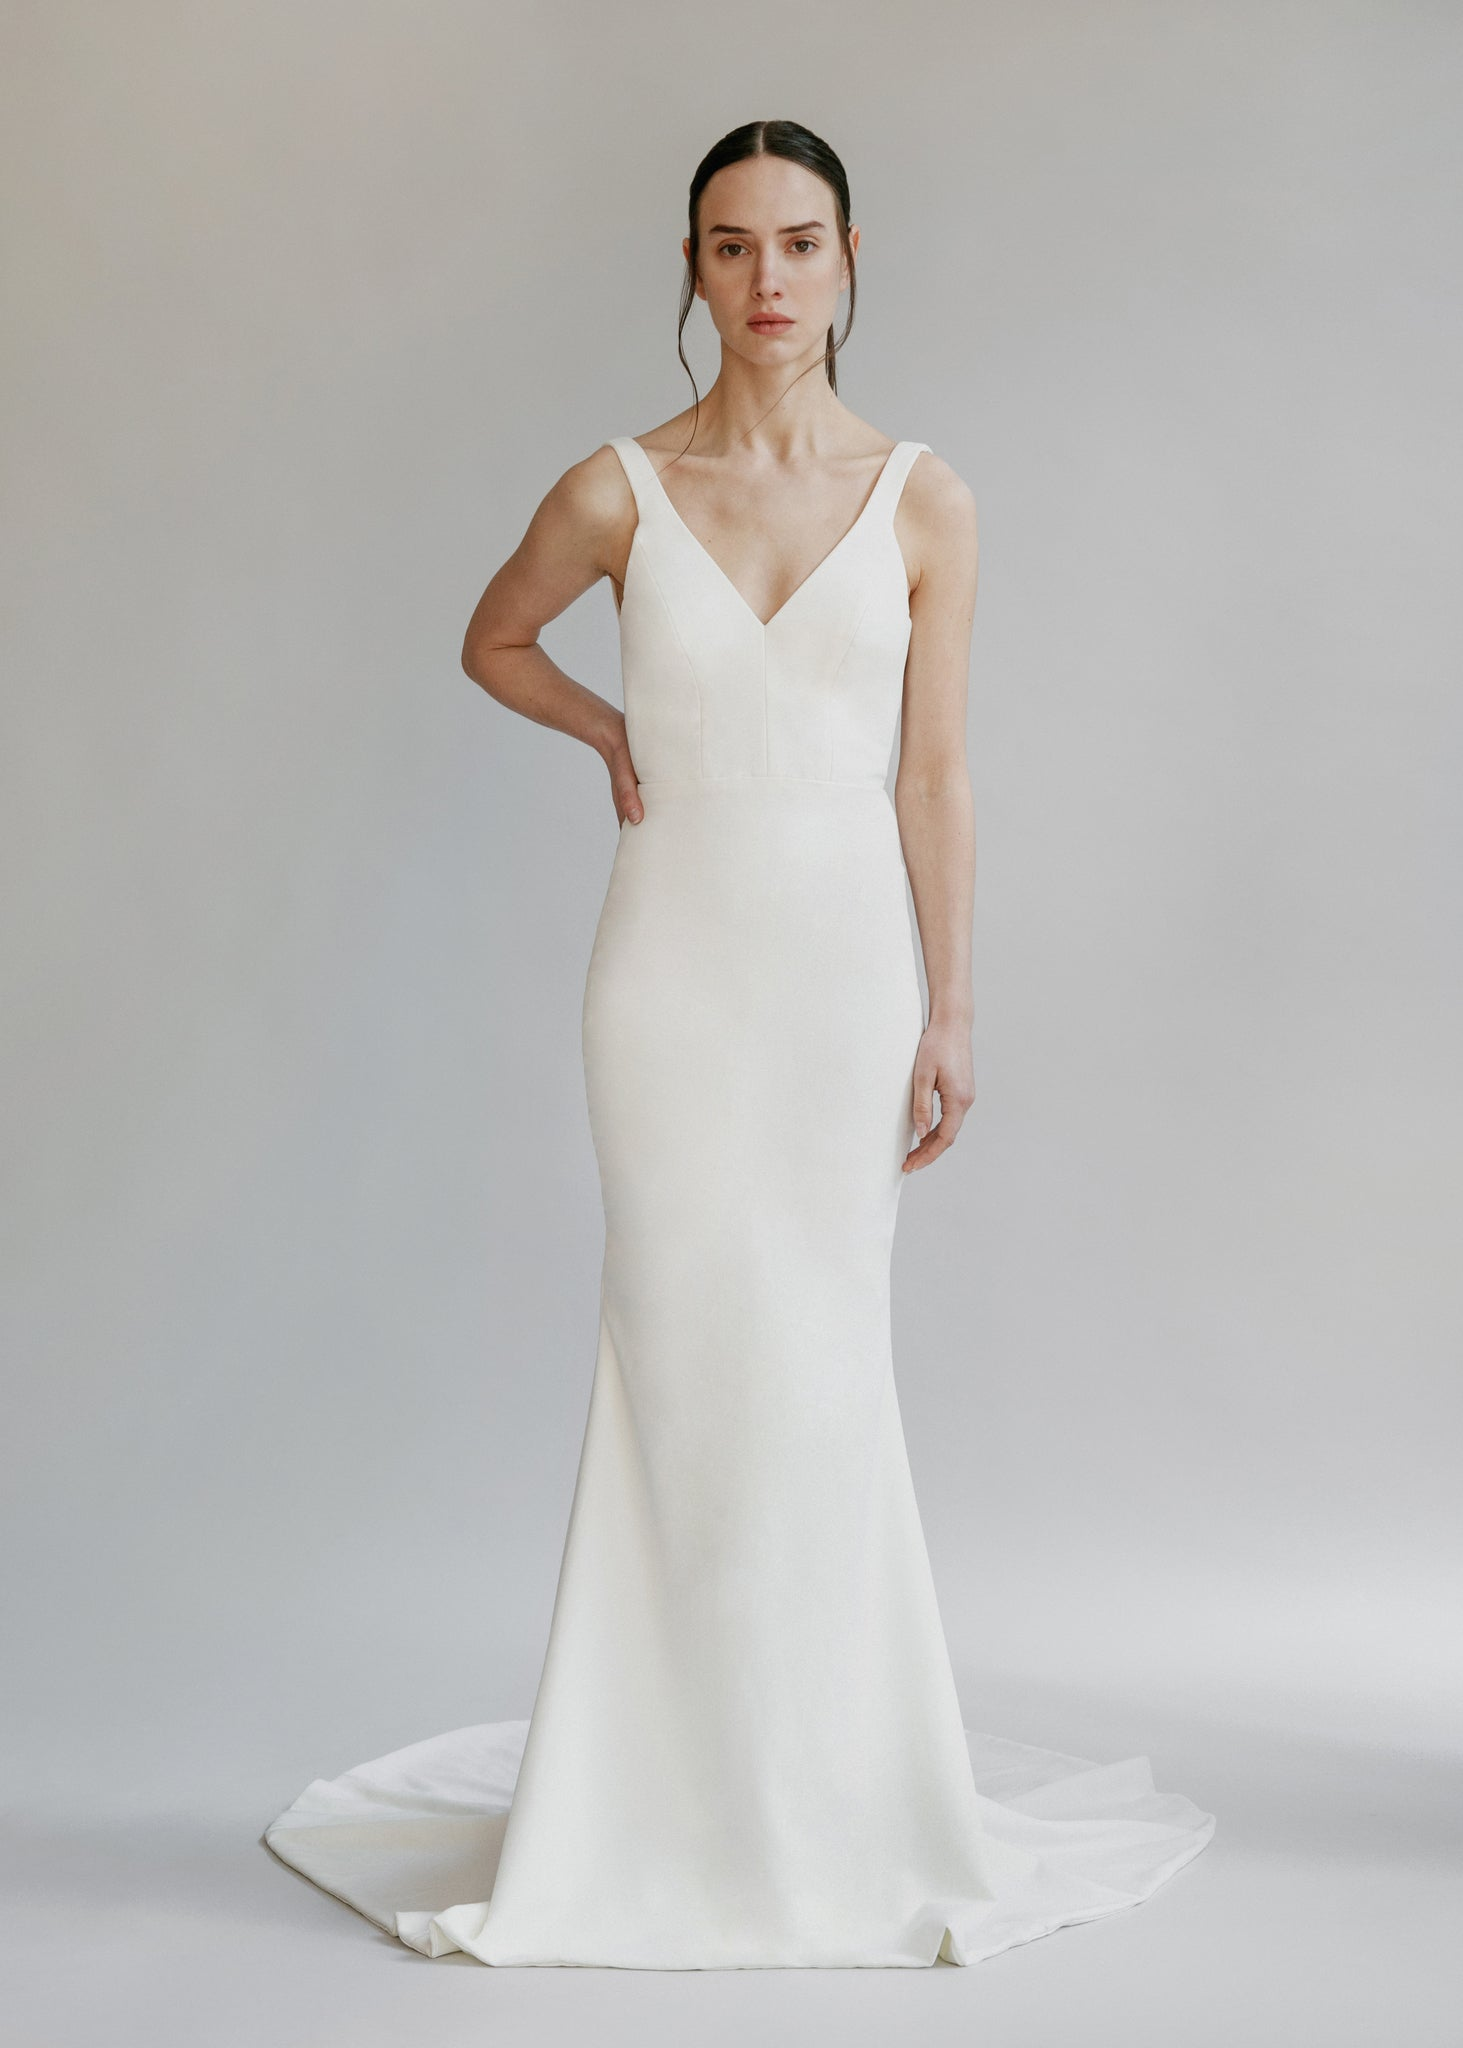 Simple classic crepe wedding dress with a square cut open back and a mermaid skirt